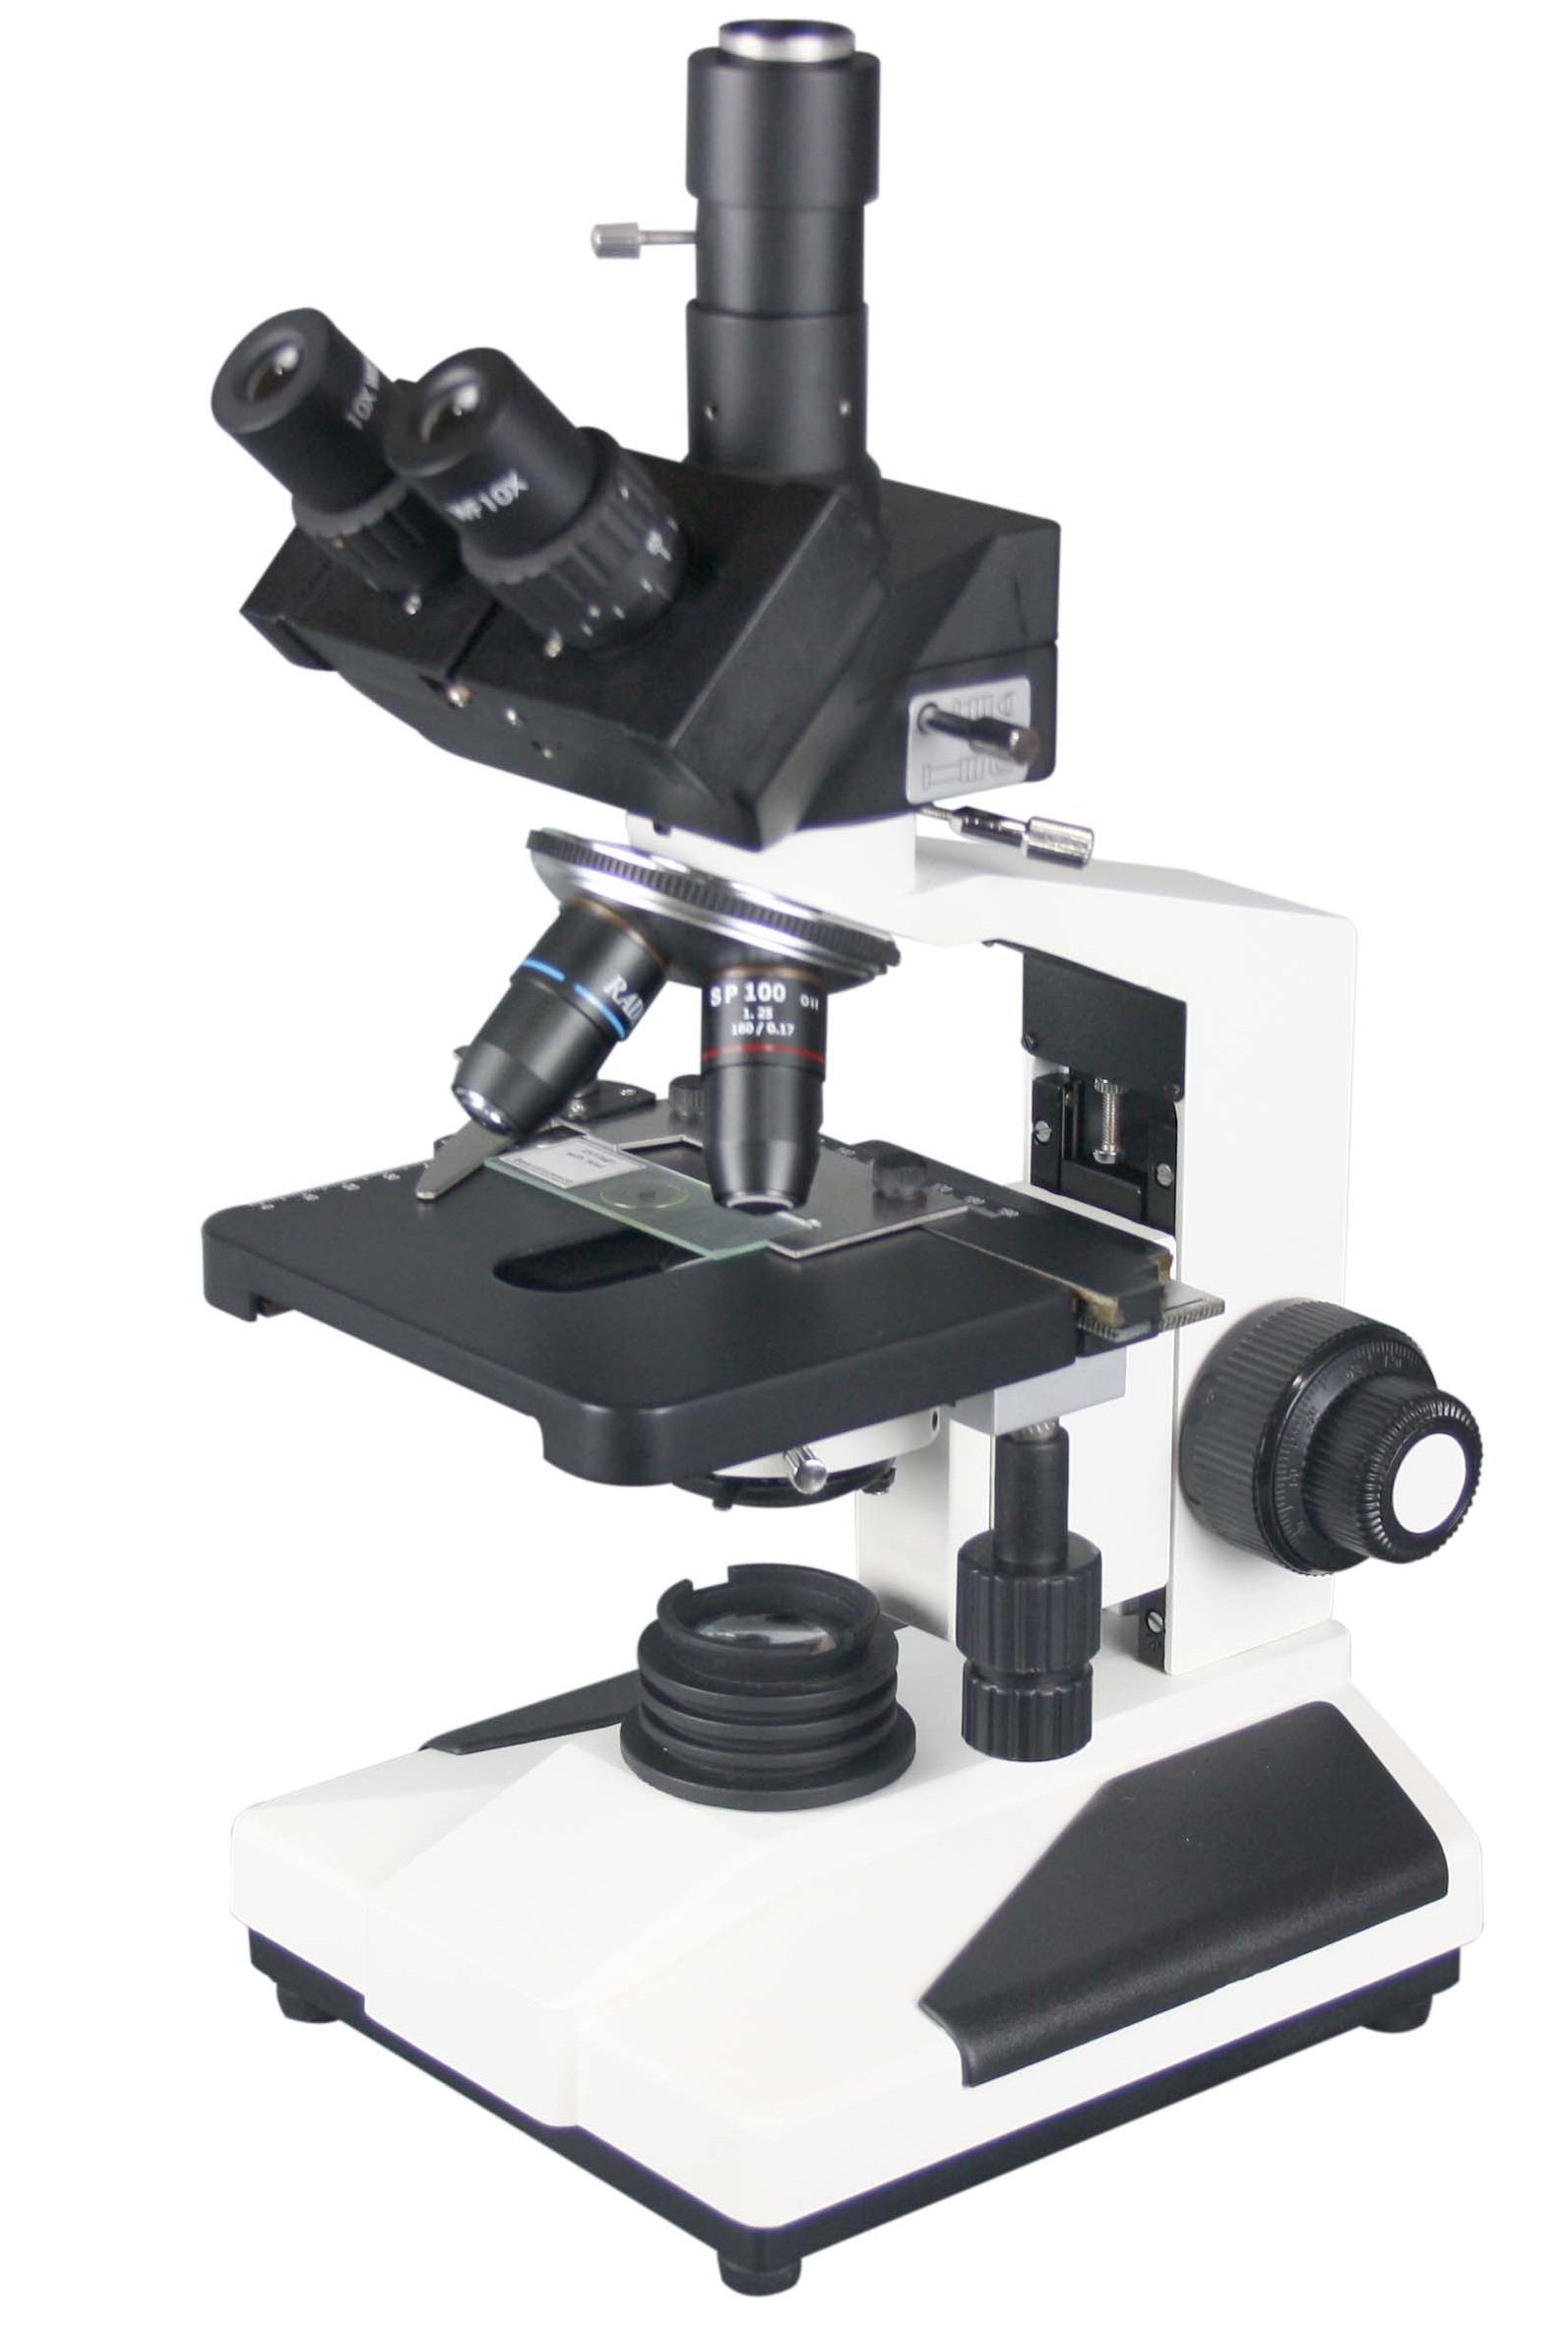 Radical 2500x Professional Research Clinical Doctor Trinocular LED Microscope w PLAN Objectives and Camera Port by Radical